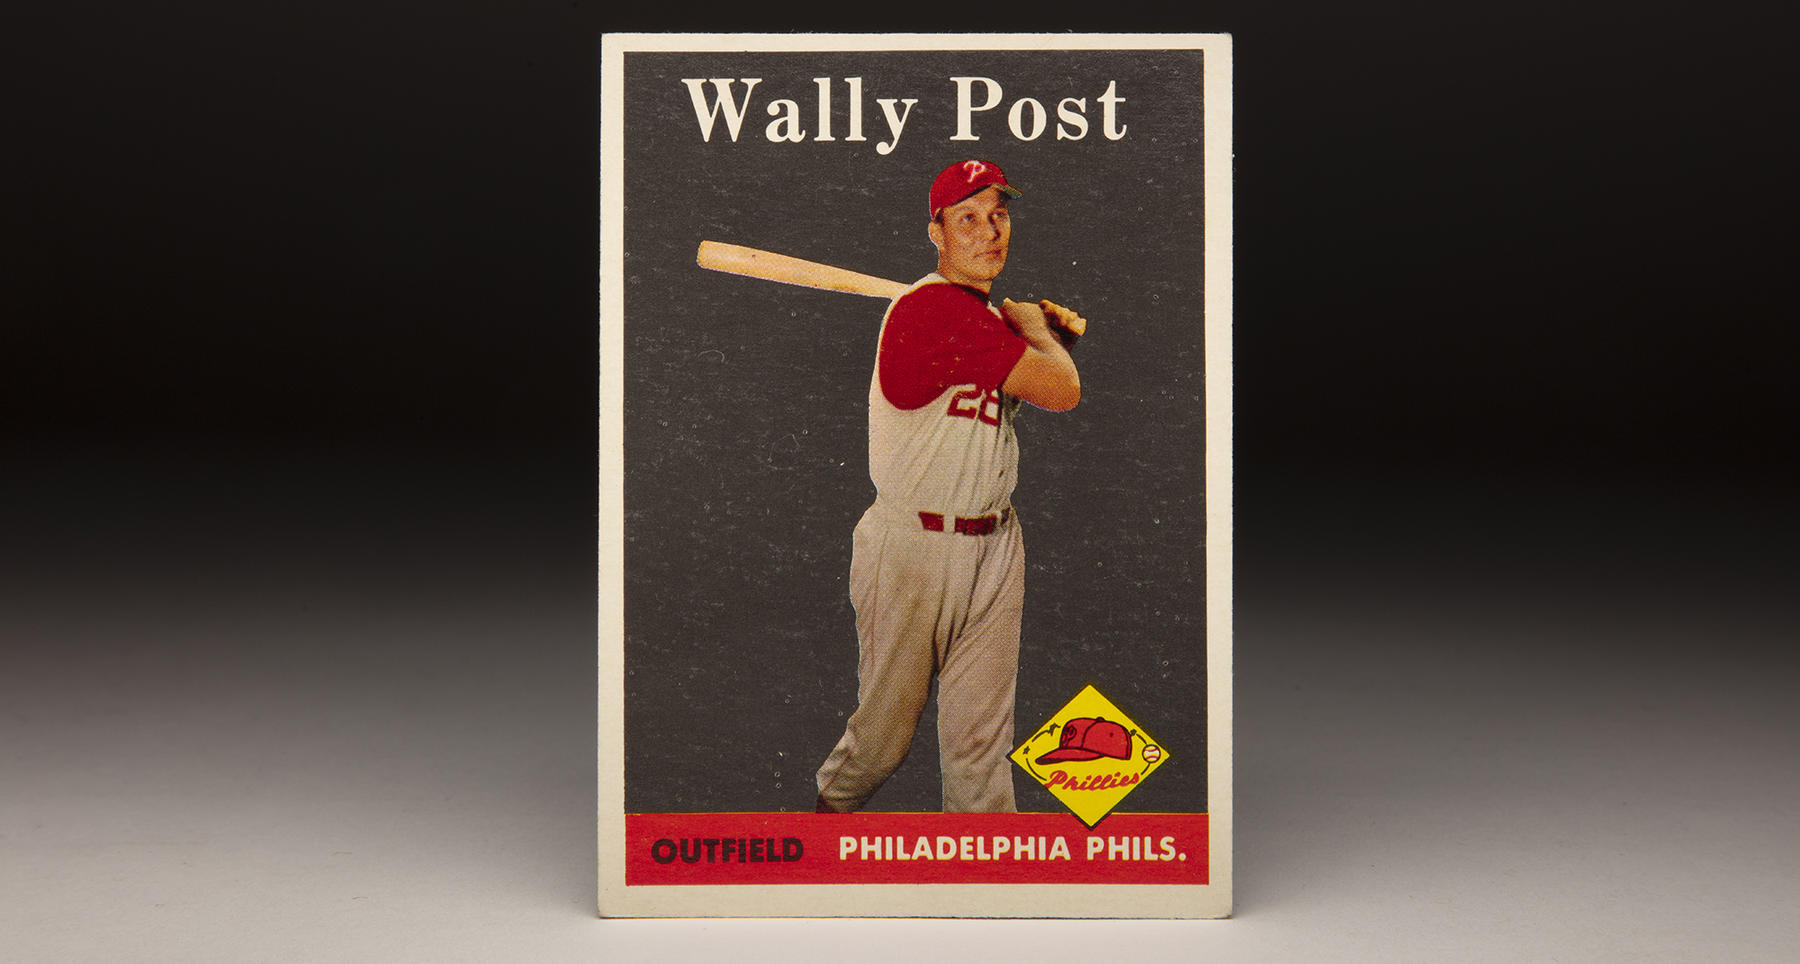 Wally Post's 1958 Topps card features a photograph taken when he was a member of the Cincinnati Reds. (Milo Stewart Jr./National Baseball Hall of Fame and Museum)